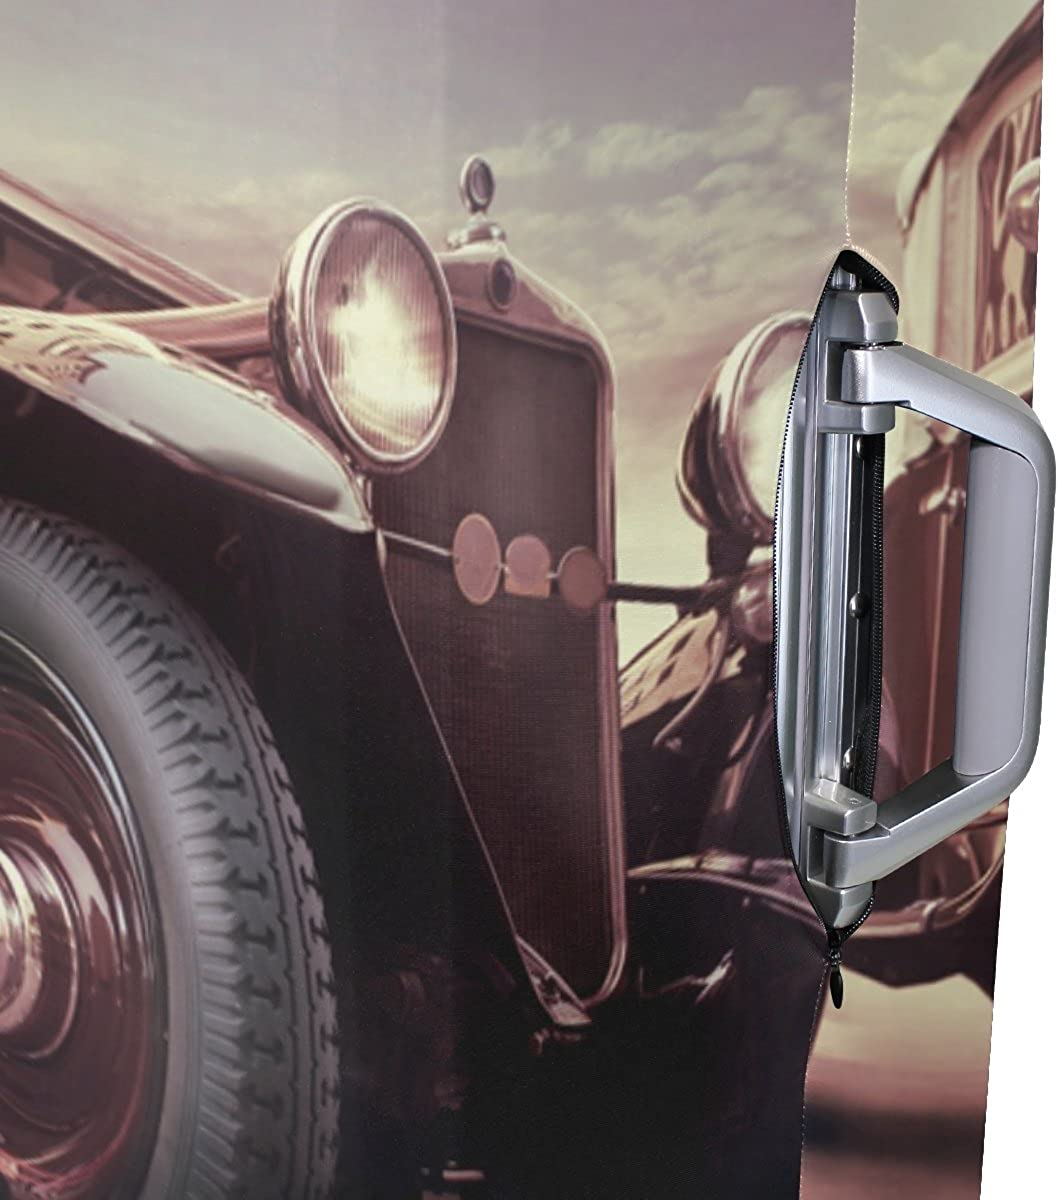 GIOVANIOR Vintage Car Luggage Cover Suitcase Protector Carry On Covers